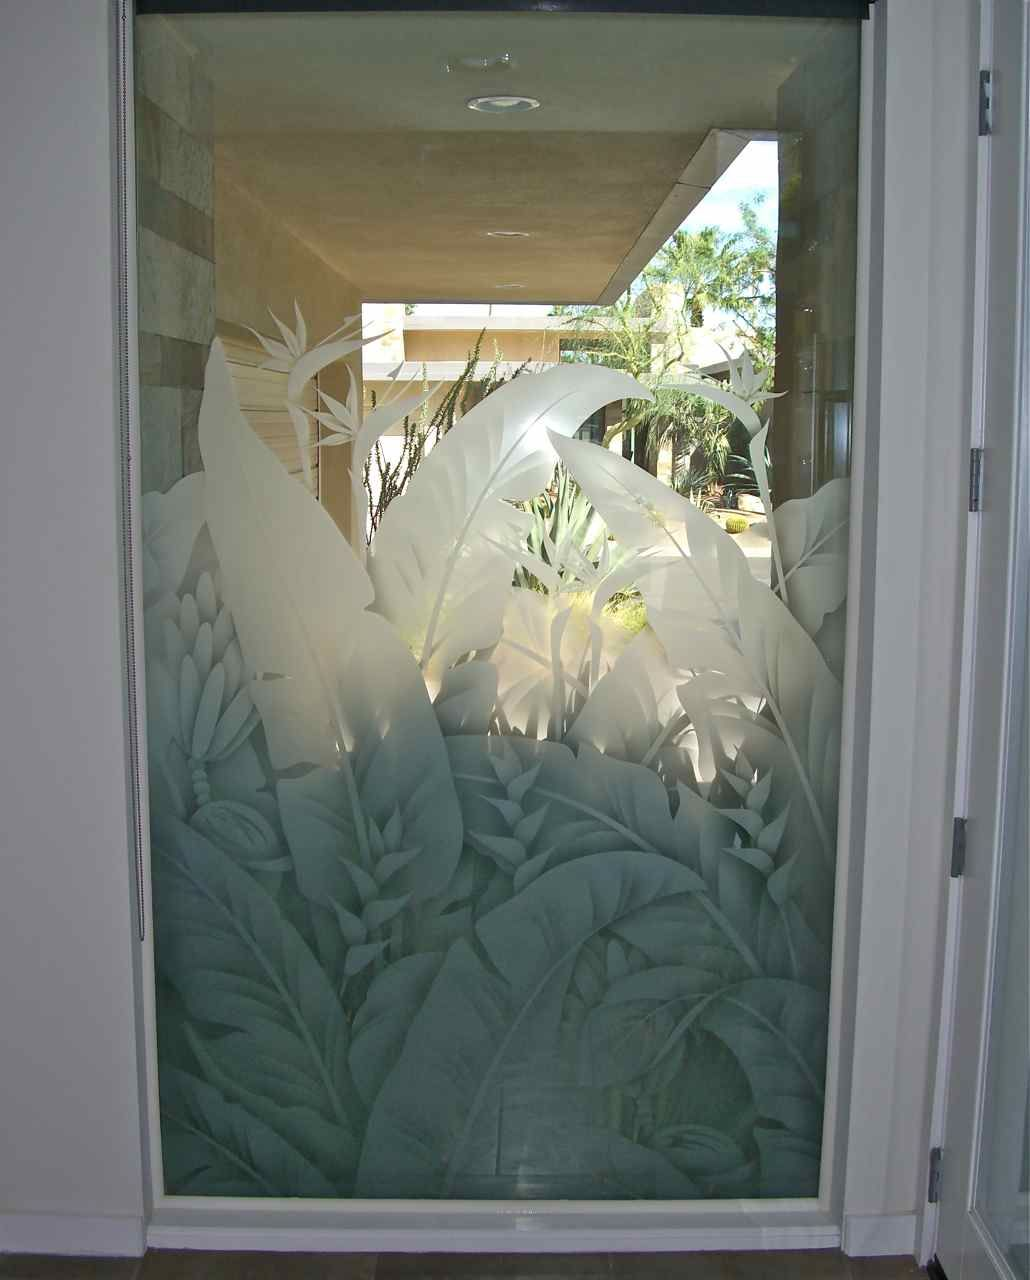 Frosted glass window bathroom - Find This Pin And More On Etched Glass Windows